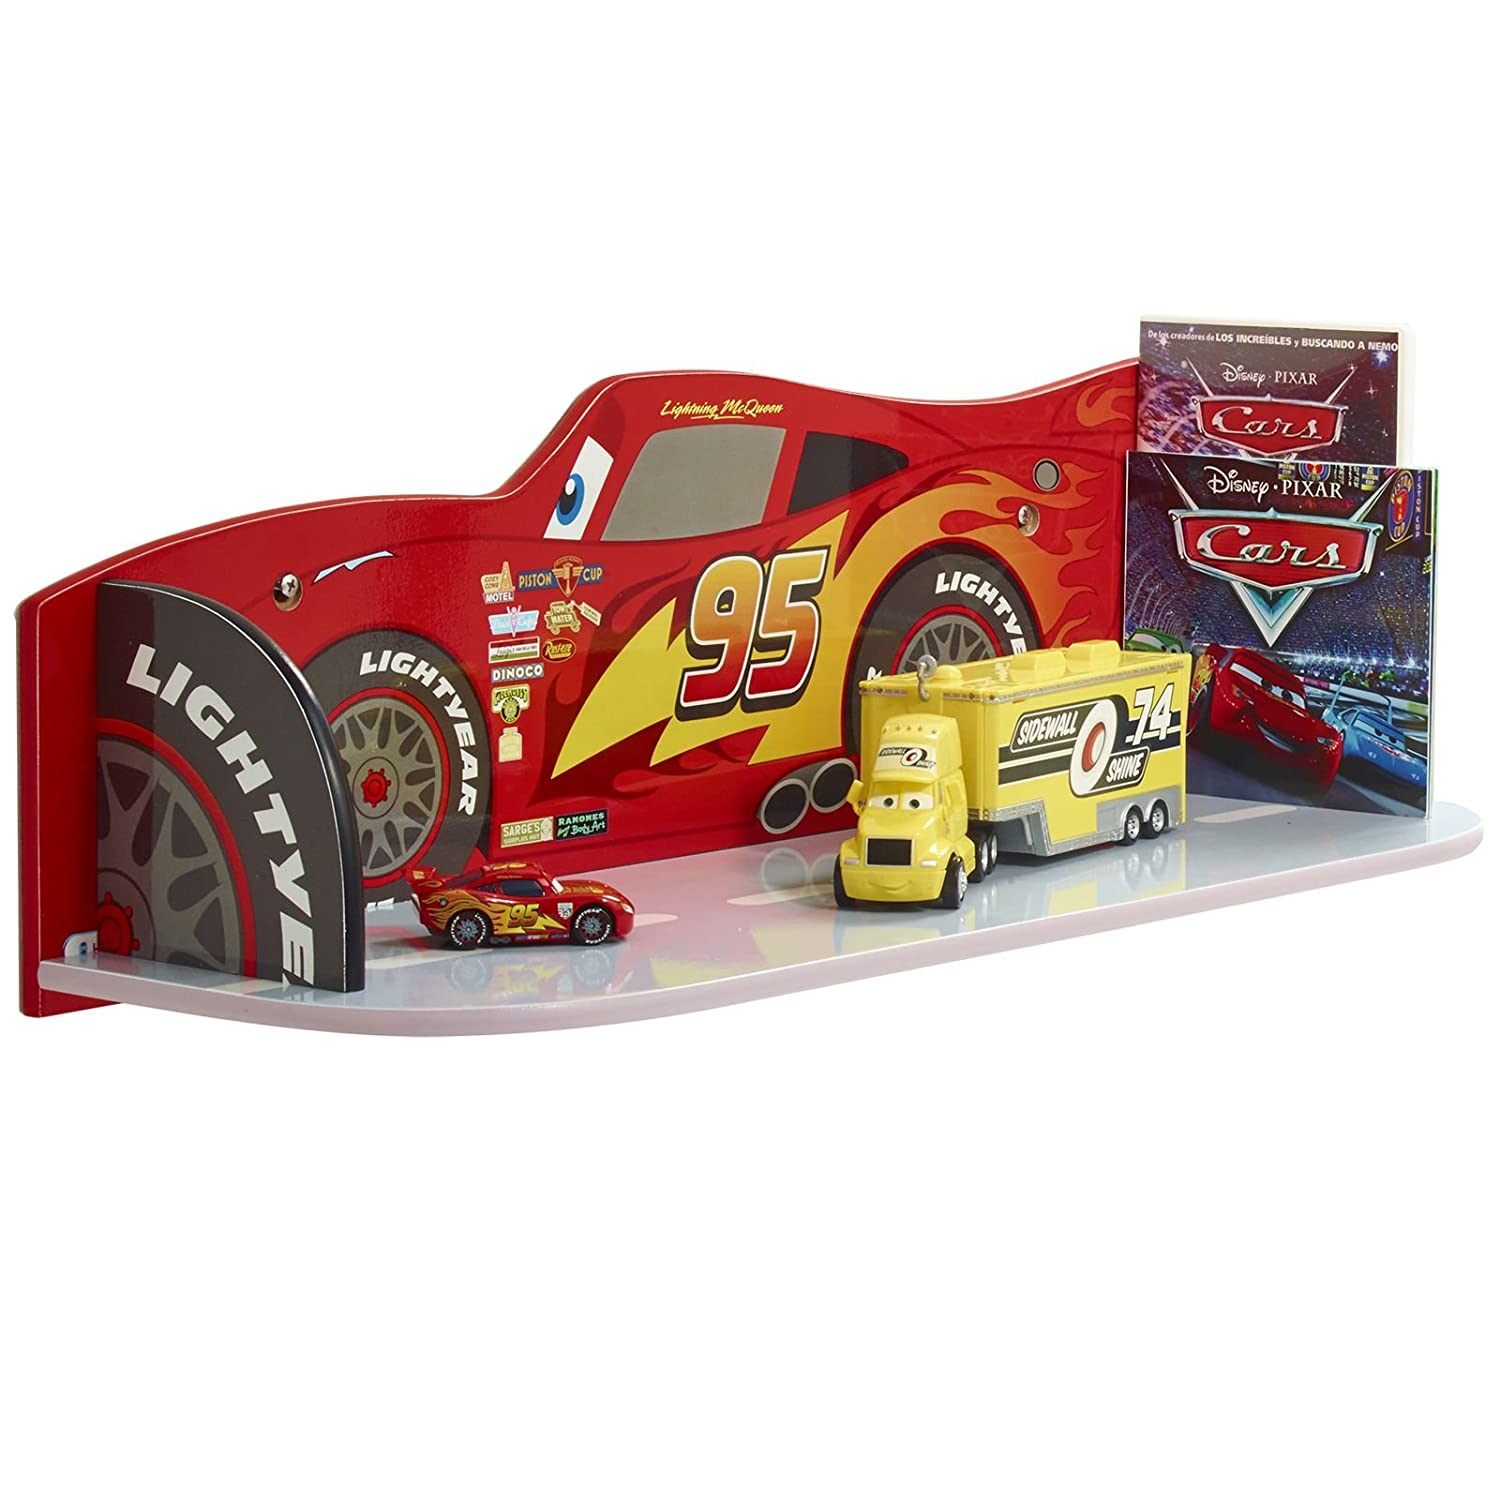 Lightning Mcqueen Bedroom Furniture Disney Cars Lightning Mcqueen Kids Bedroom Book Shelf By Hellohome